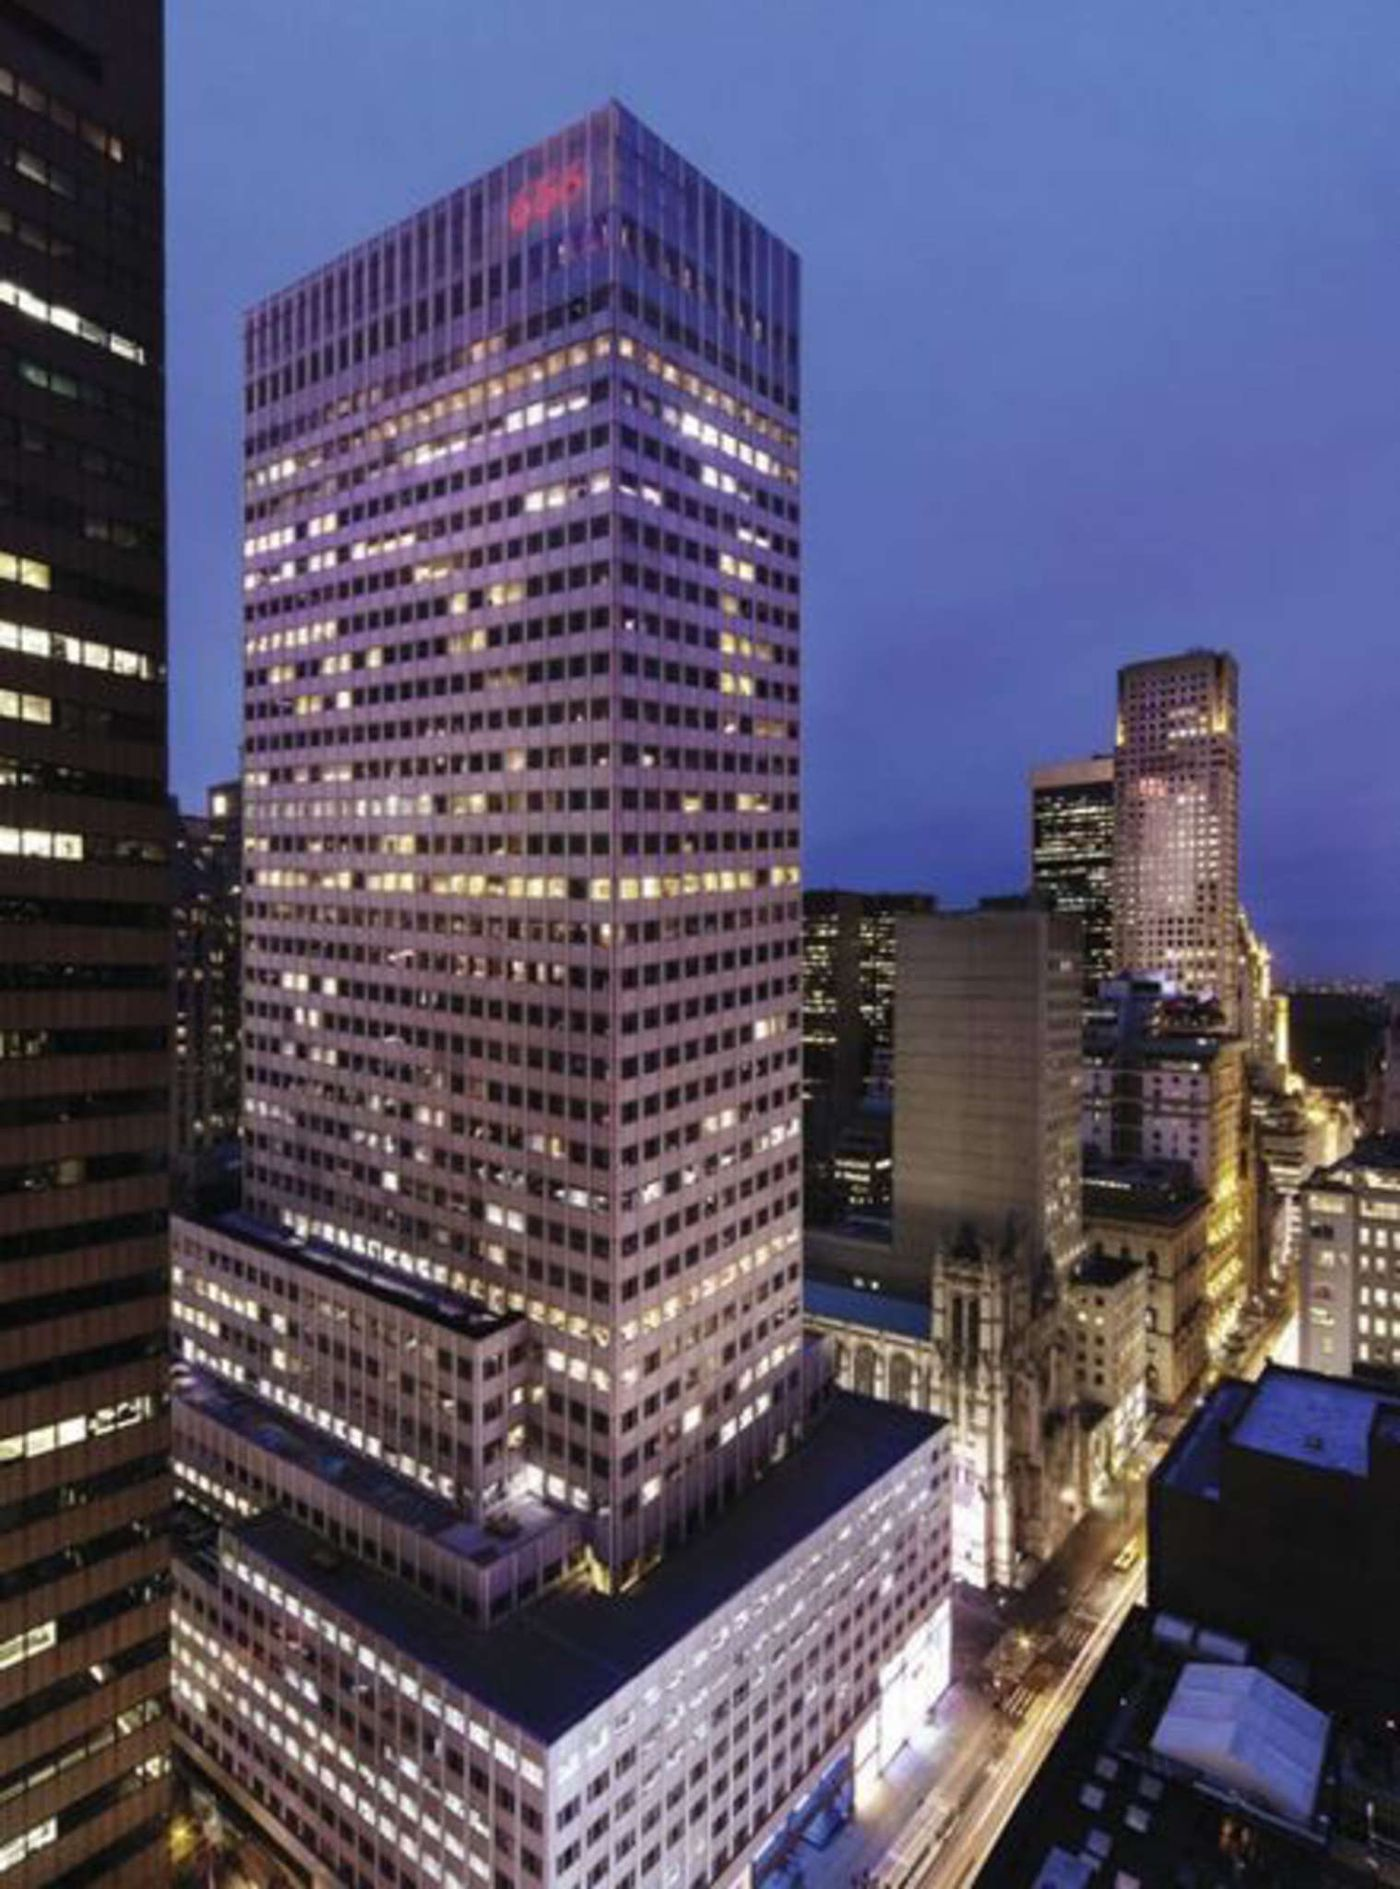 Mounting debt, empty offices at Kushner tower